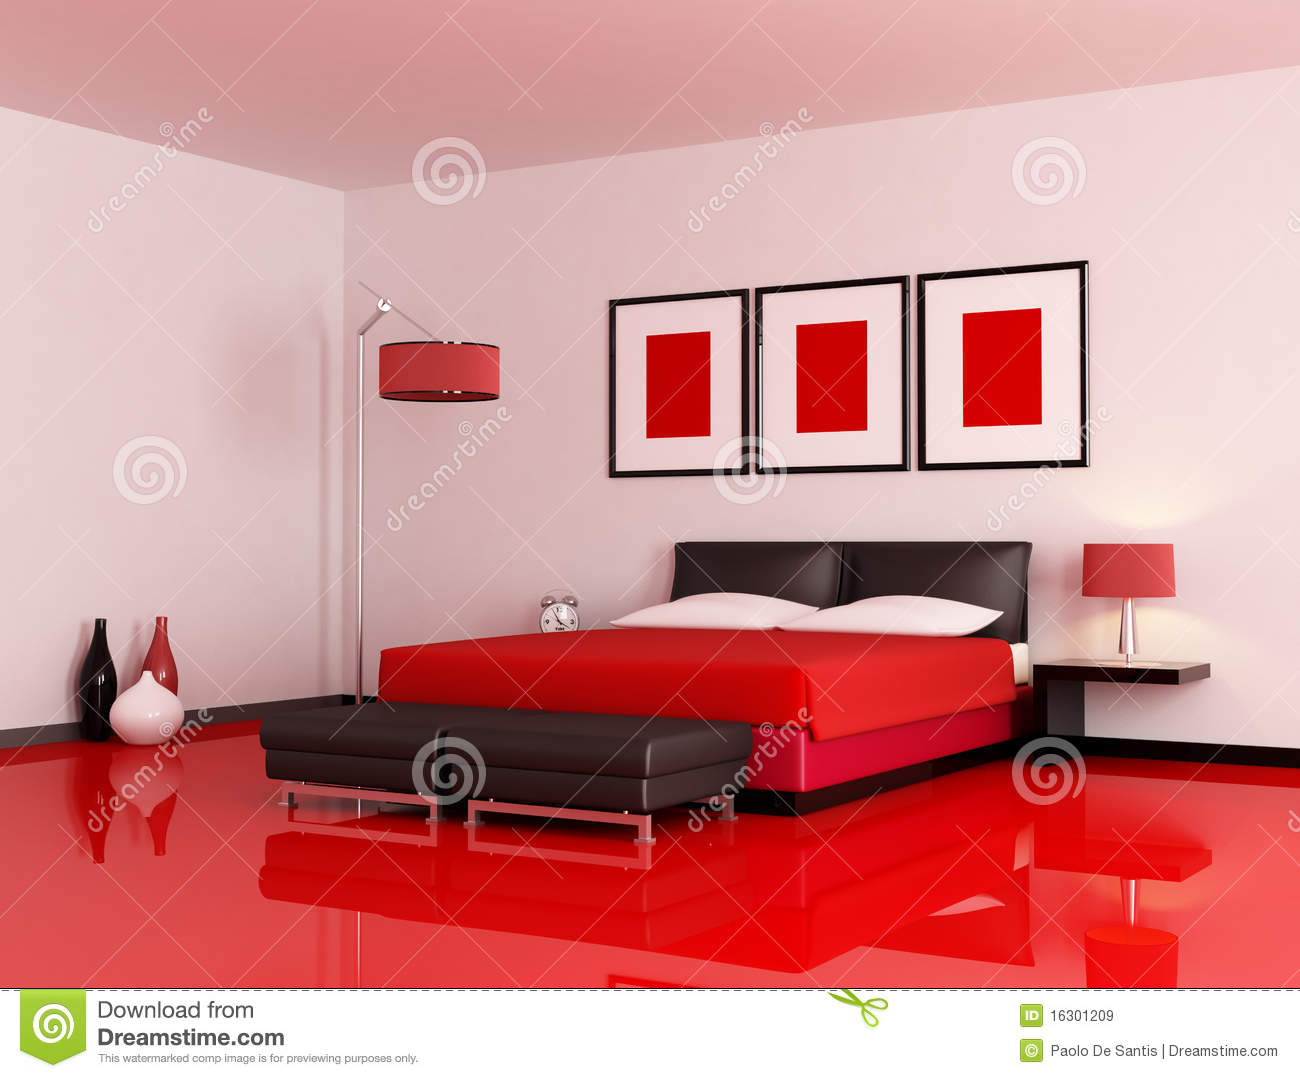 Slaapkamer Rood Met Zwart : Red White and Black Bedroom